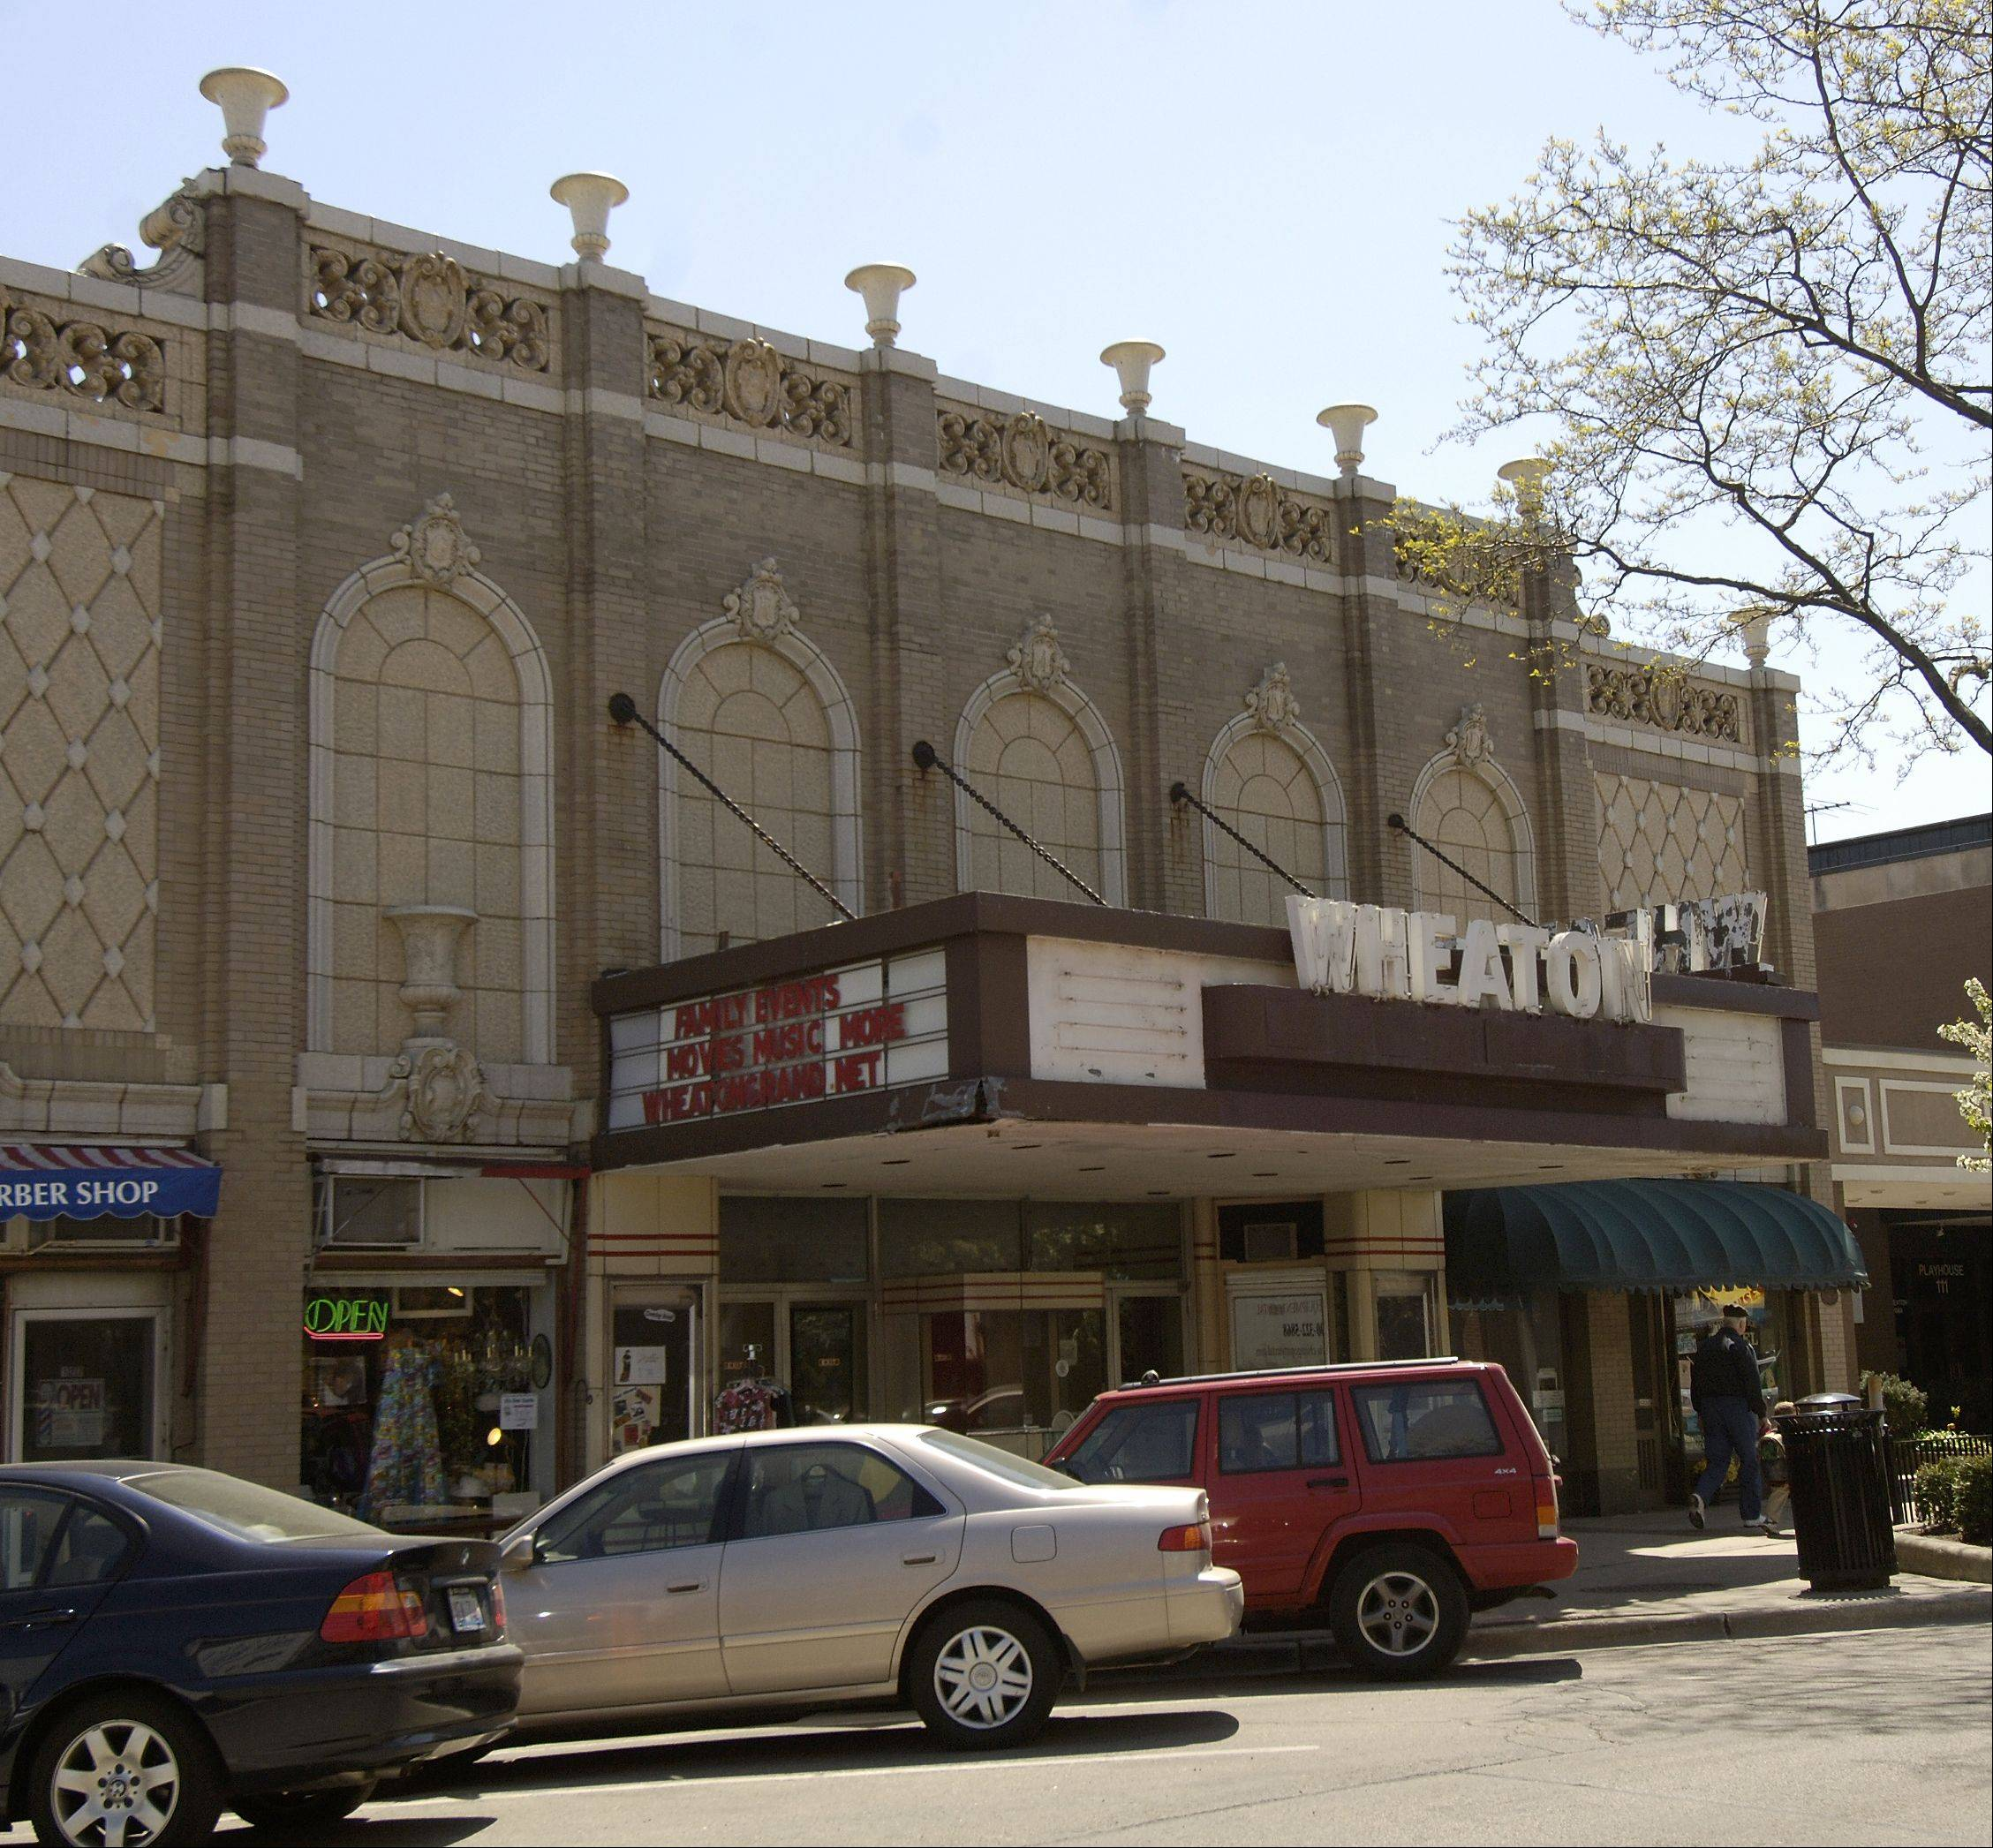 A new unofficial think tank gathered ideas Thursday about what could be done with the Wheaton Grand Theater in downtown Wheaton.